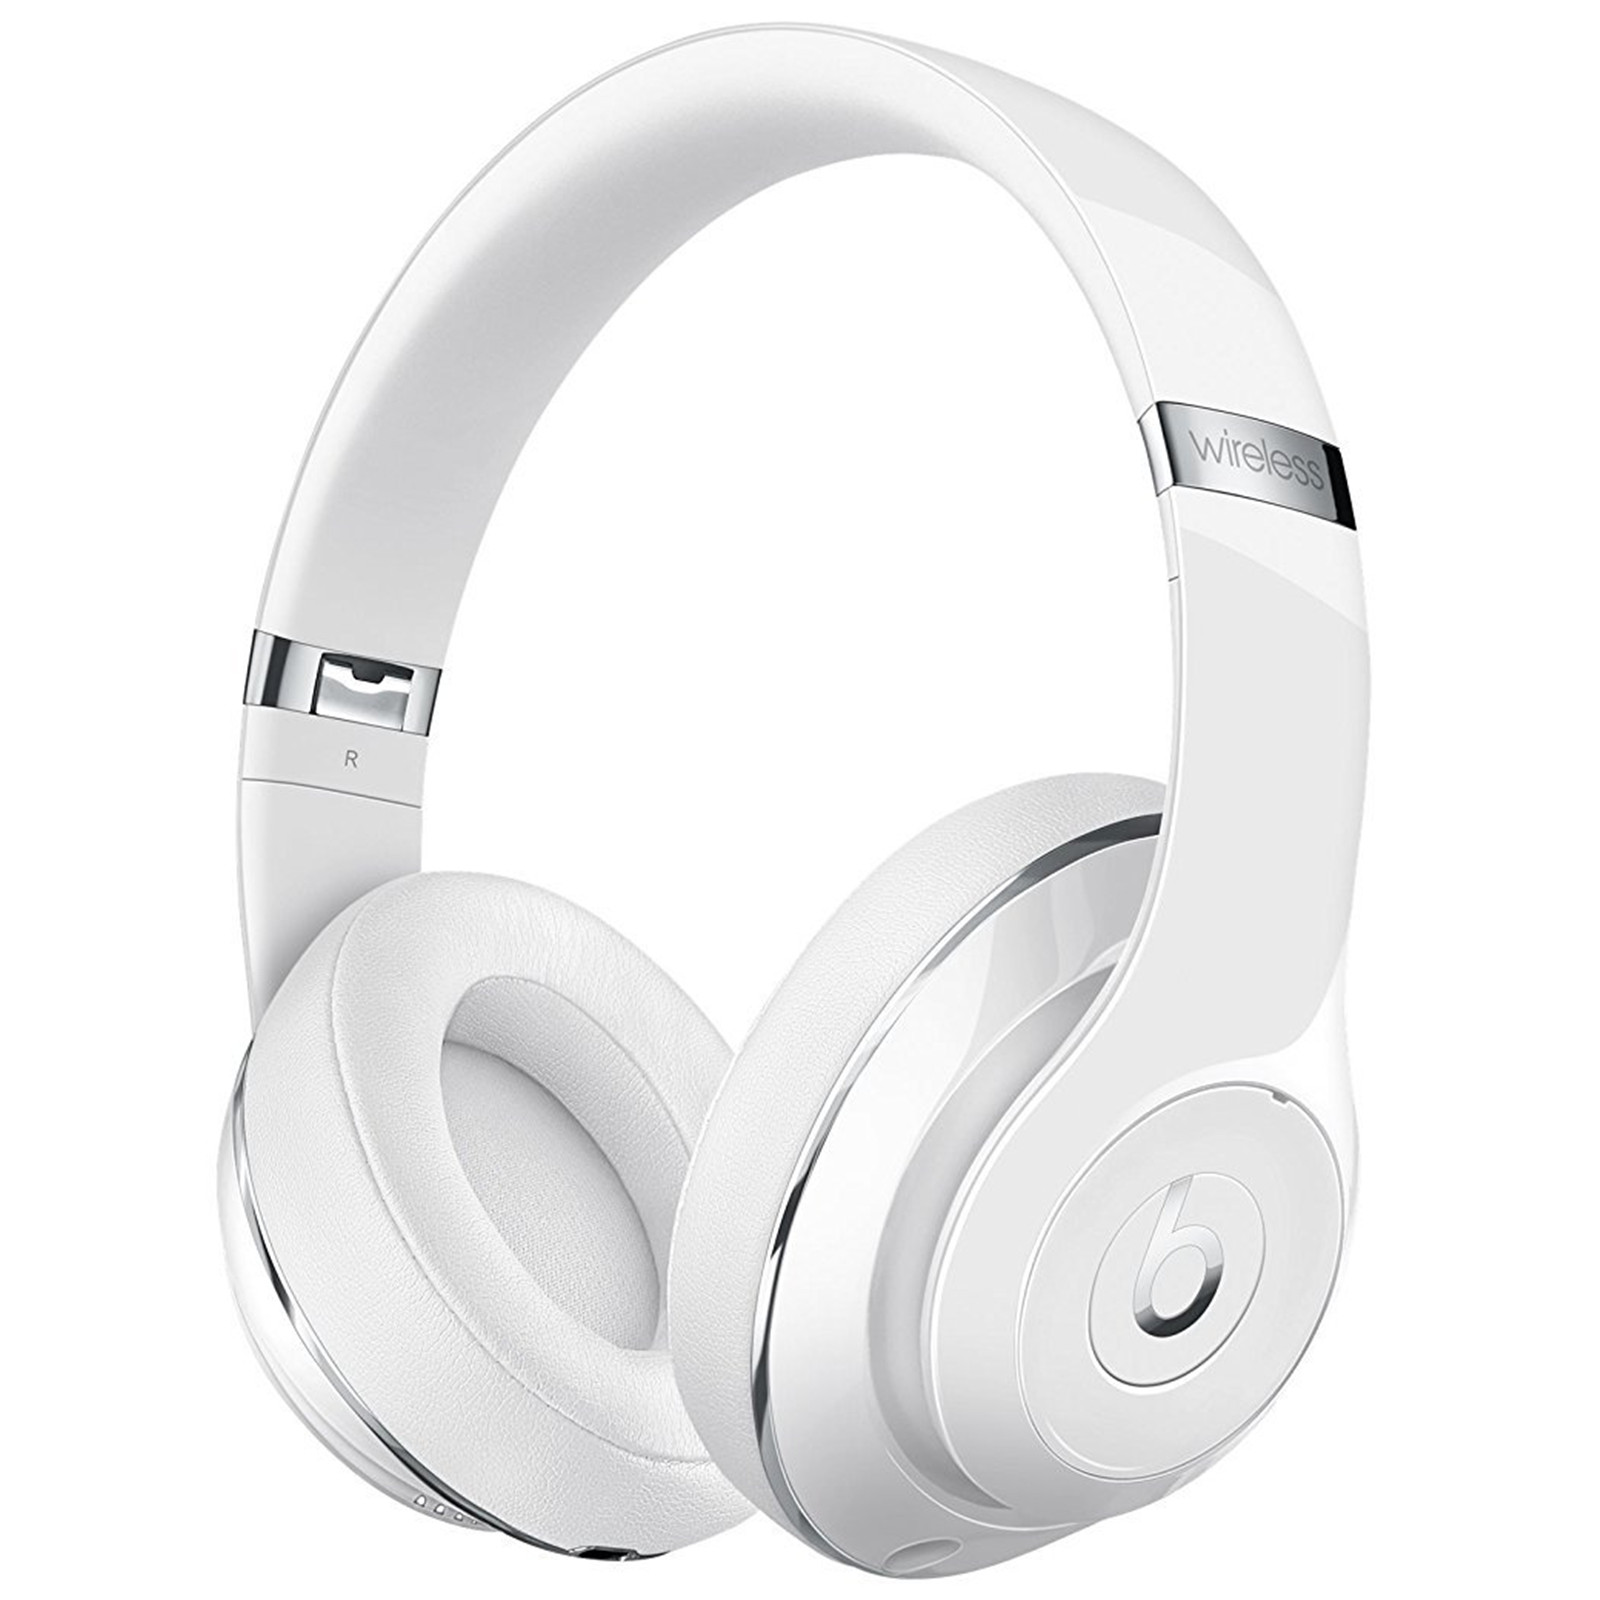 Beats Studio 2 Wireless Not Working Wire Center Ballastwiringjpg Buy The Studio2 Over Ear Headphones Gloss White Rh Pbtech Co Nz Turning On Right